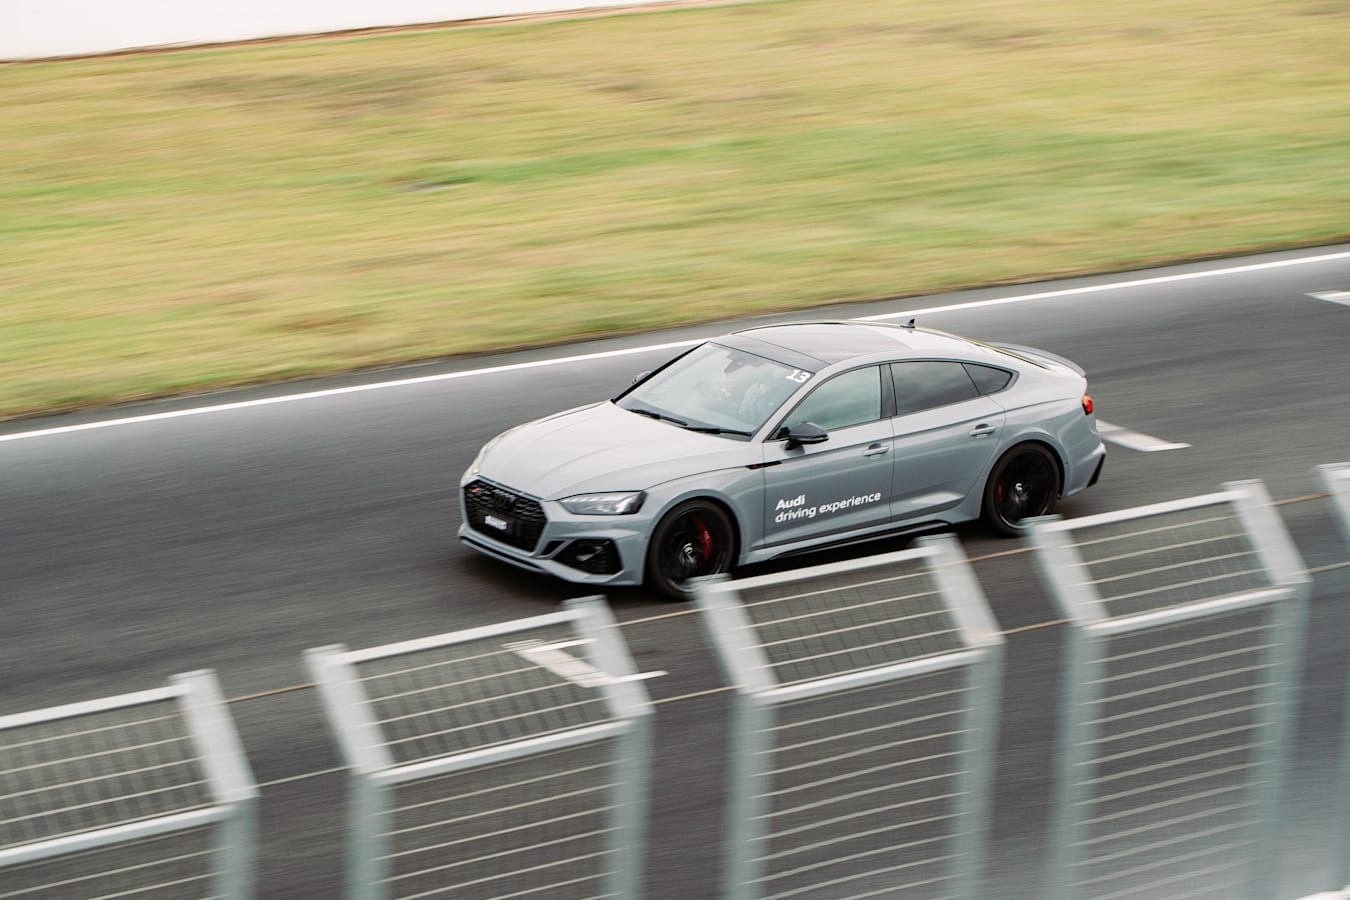 Motor Features 20210326 Audi Driving Experience 2021 Phillip Island 072